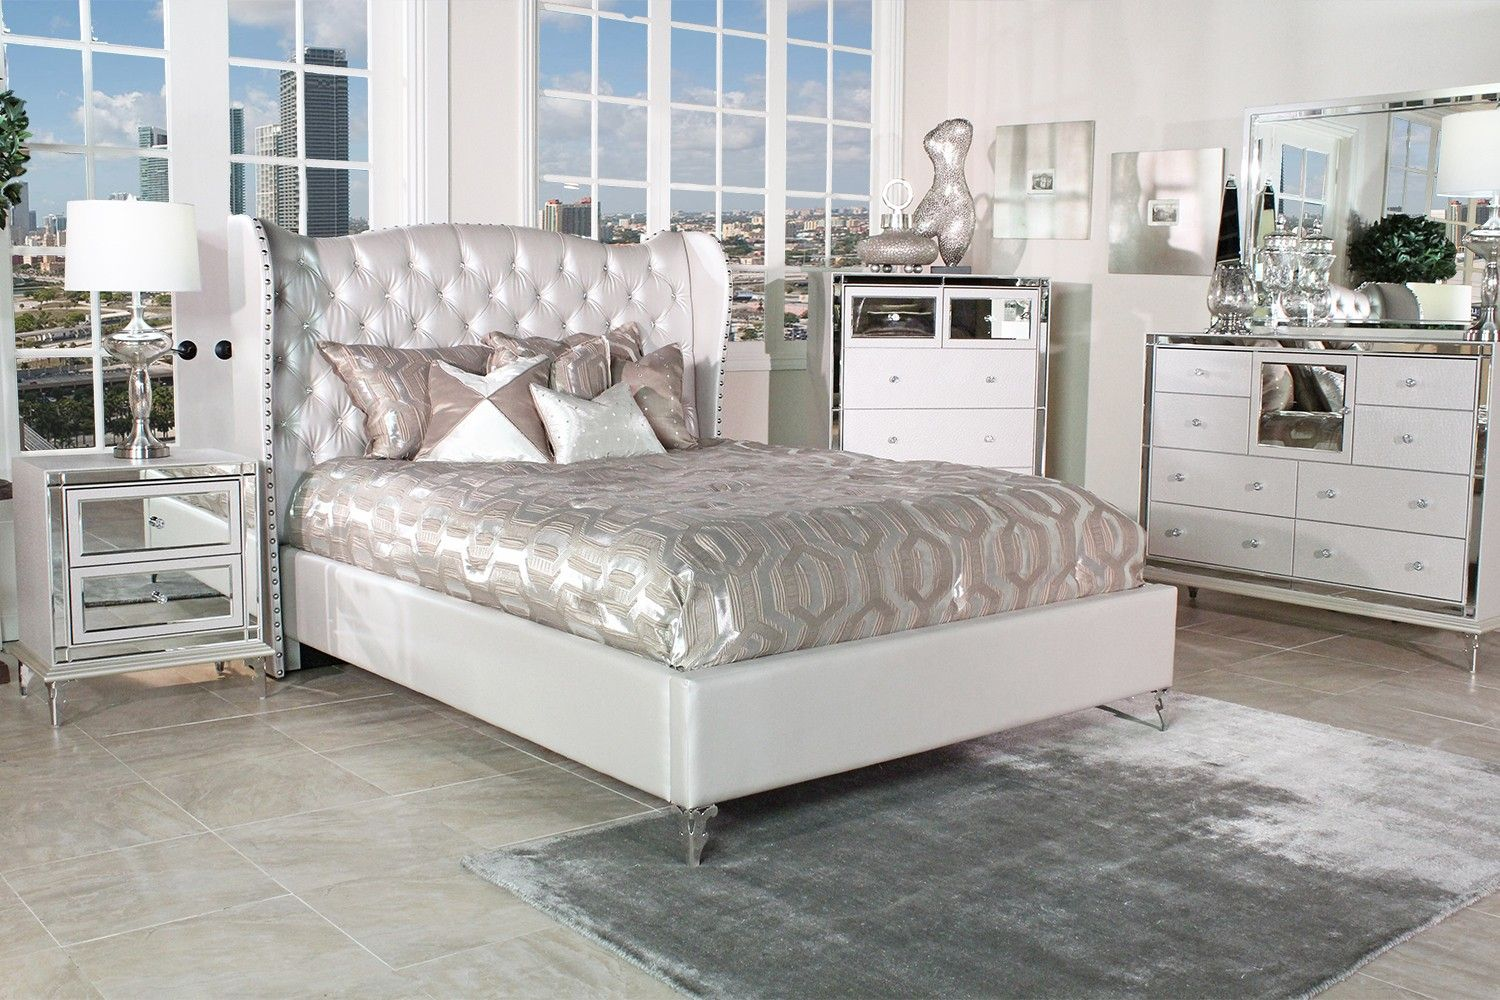 Hollywood Loft Bedroom   Bedroom   Mor Furniture for Less. Hollywood Loft Bedroom   Bedroom   Mor Furniture for Less   Ideas